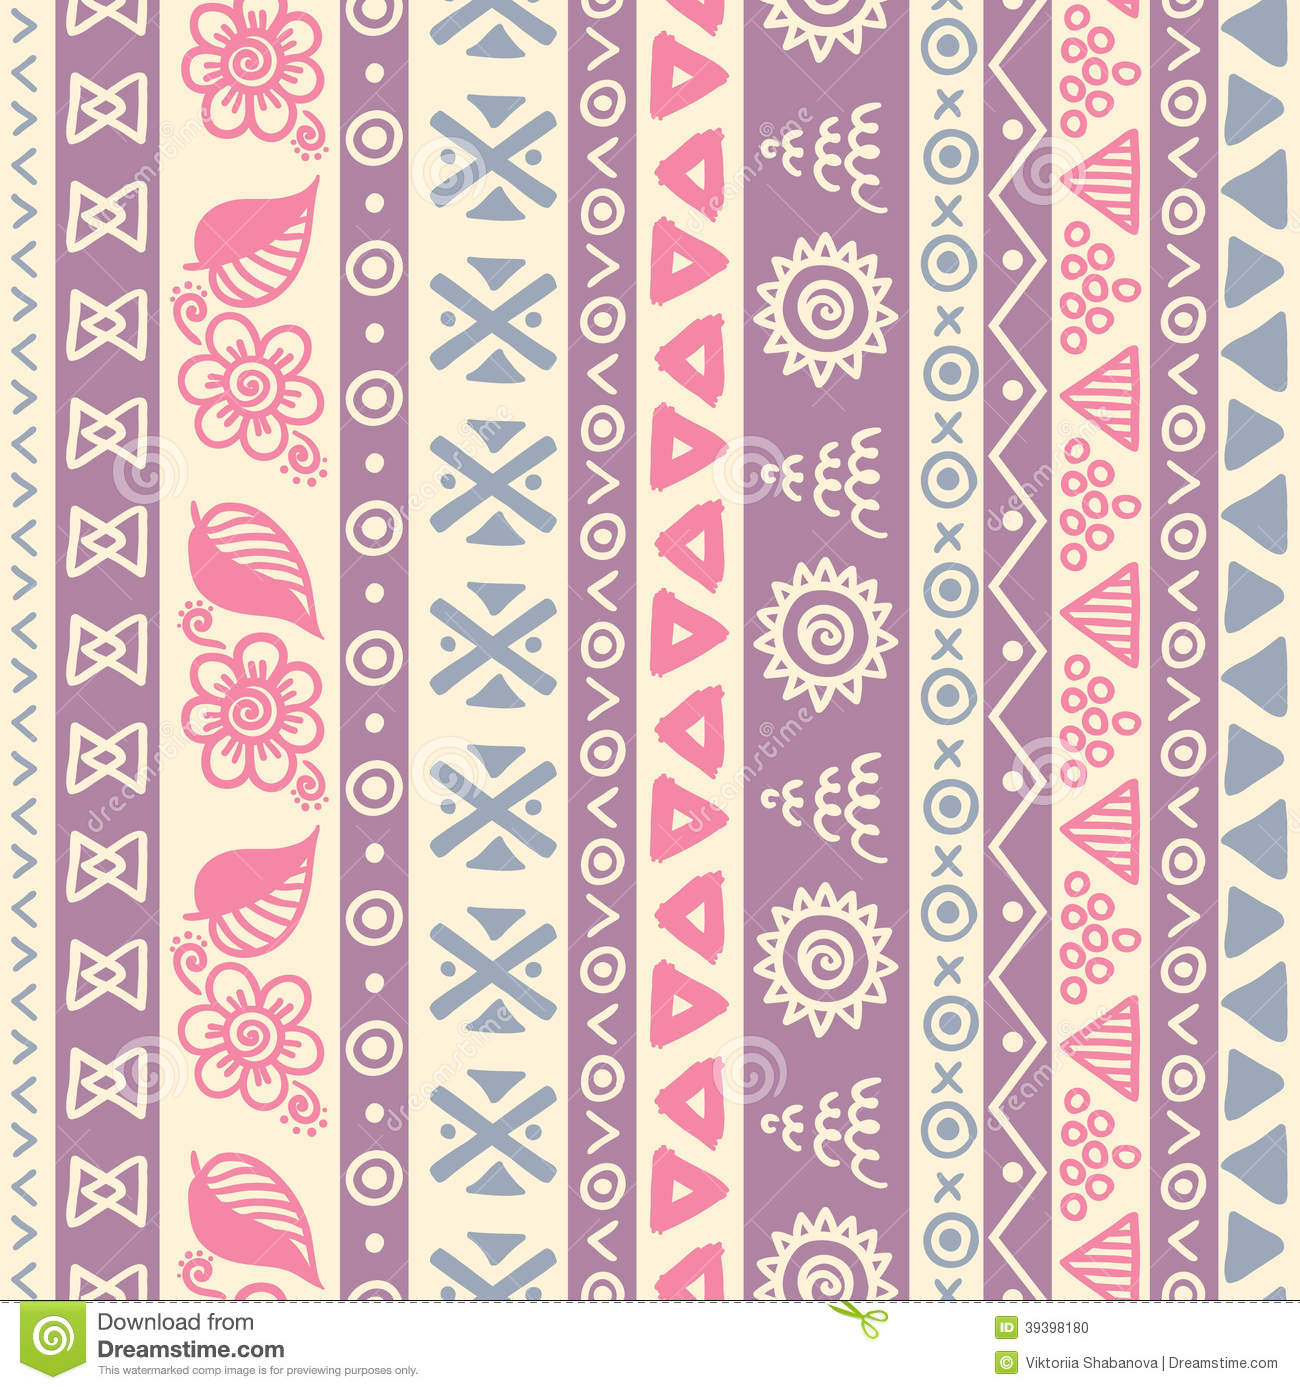 Cute Tribal Patterns Wallpaper Tribal Striped Seamless Pattern Stock Vector Image